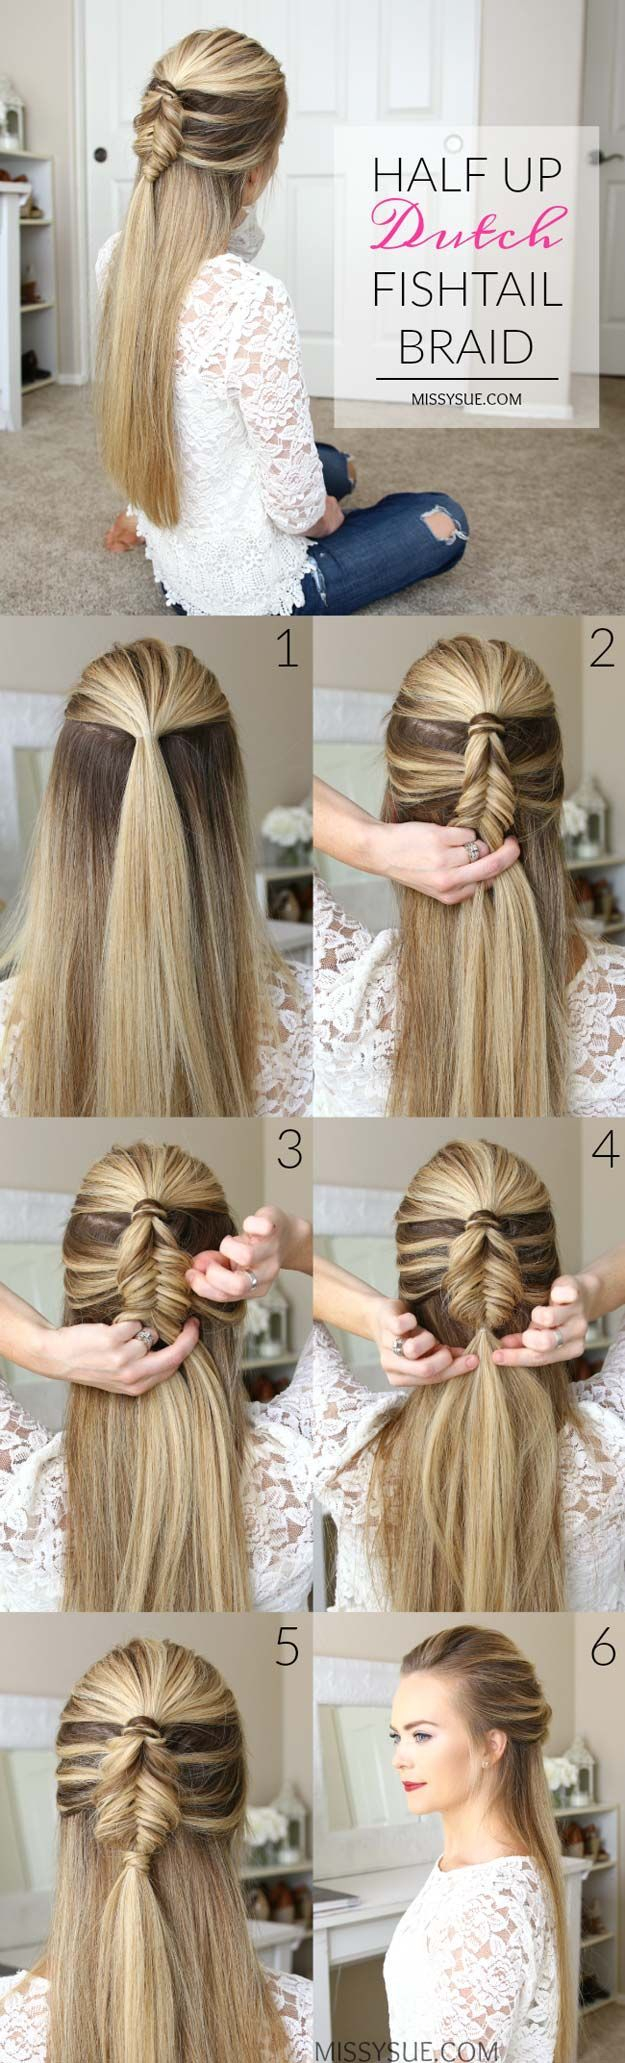 Best Hair Braiding Tutorials - Half Up Dutch Fishtail Braid - Easy Step by Step Tutorials for Braids - How To Braid Fishtail, French Braids, Flower Crown, Side Braids, Cornrows, Updos - Cool Braided Hairstyles for Girls, Teens and Women - School, Day and